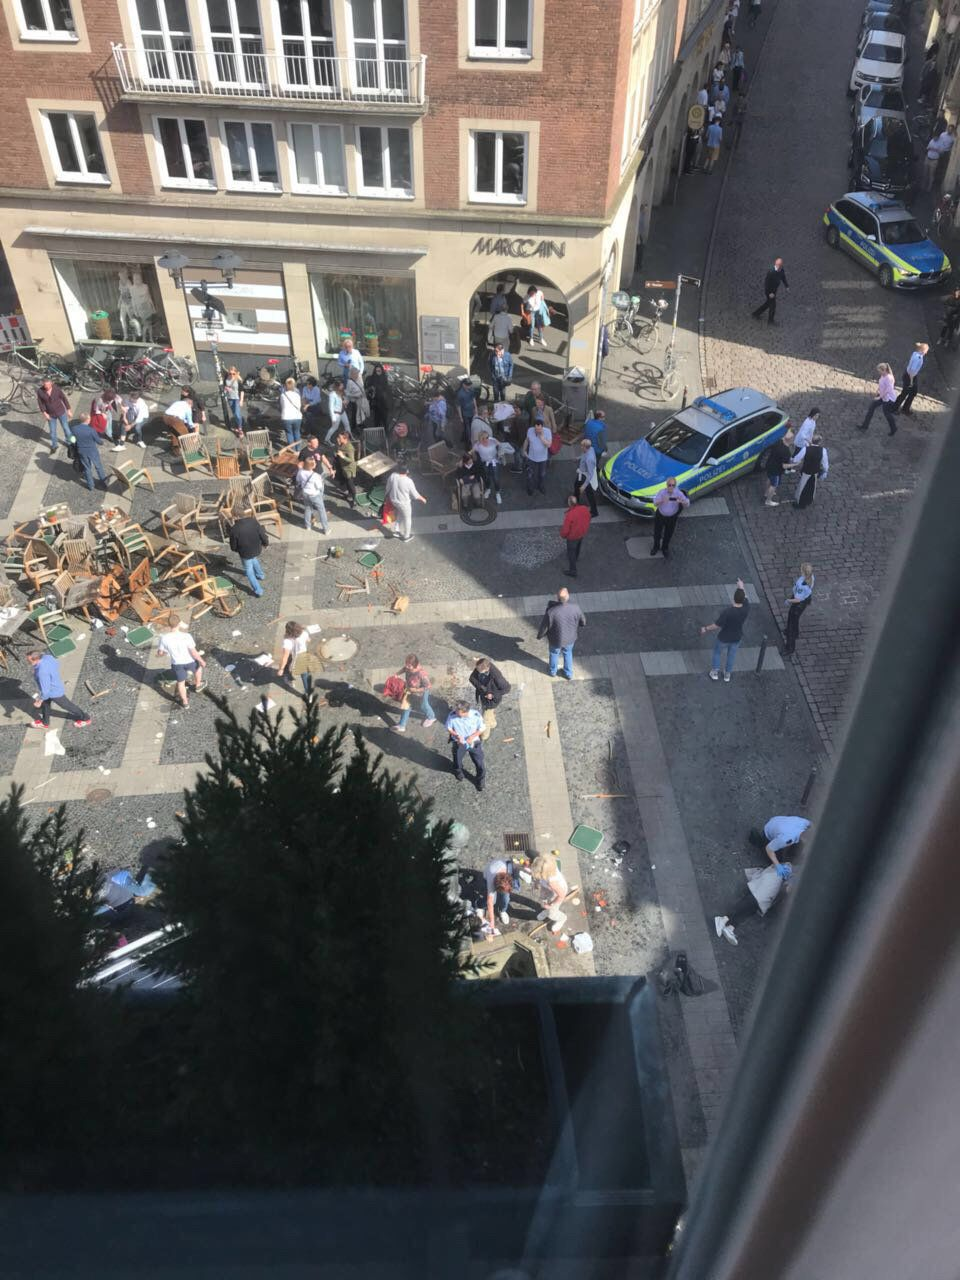 A vehicle drove into pedestrians in Muenster, Germany, on